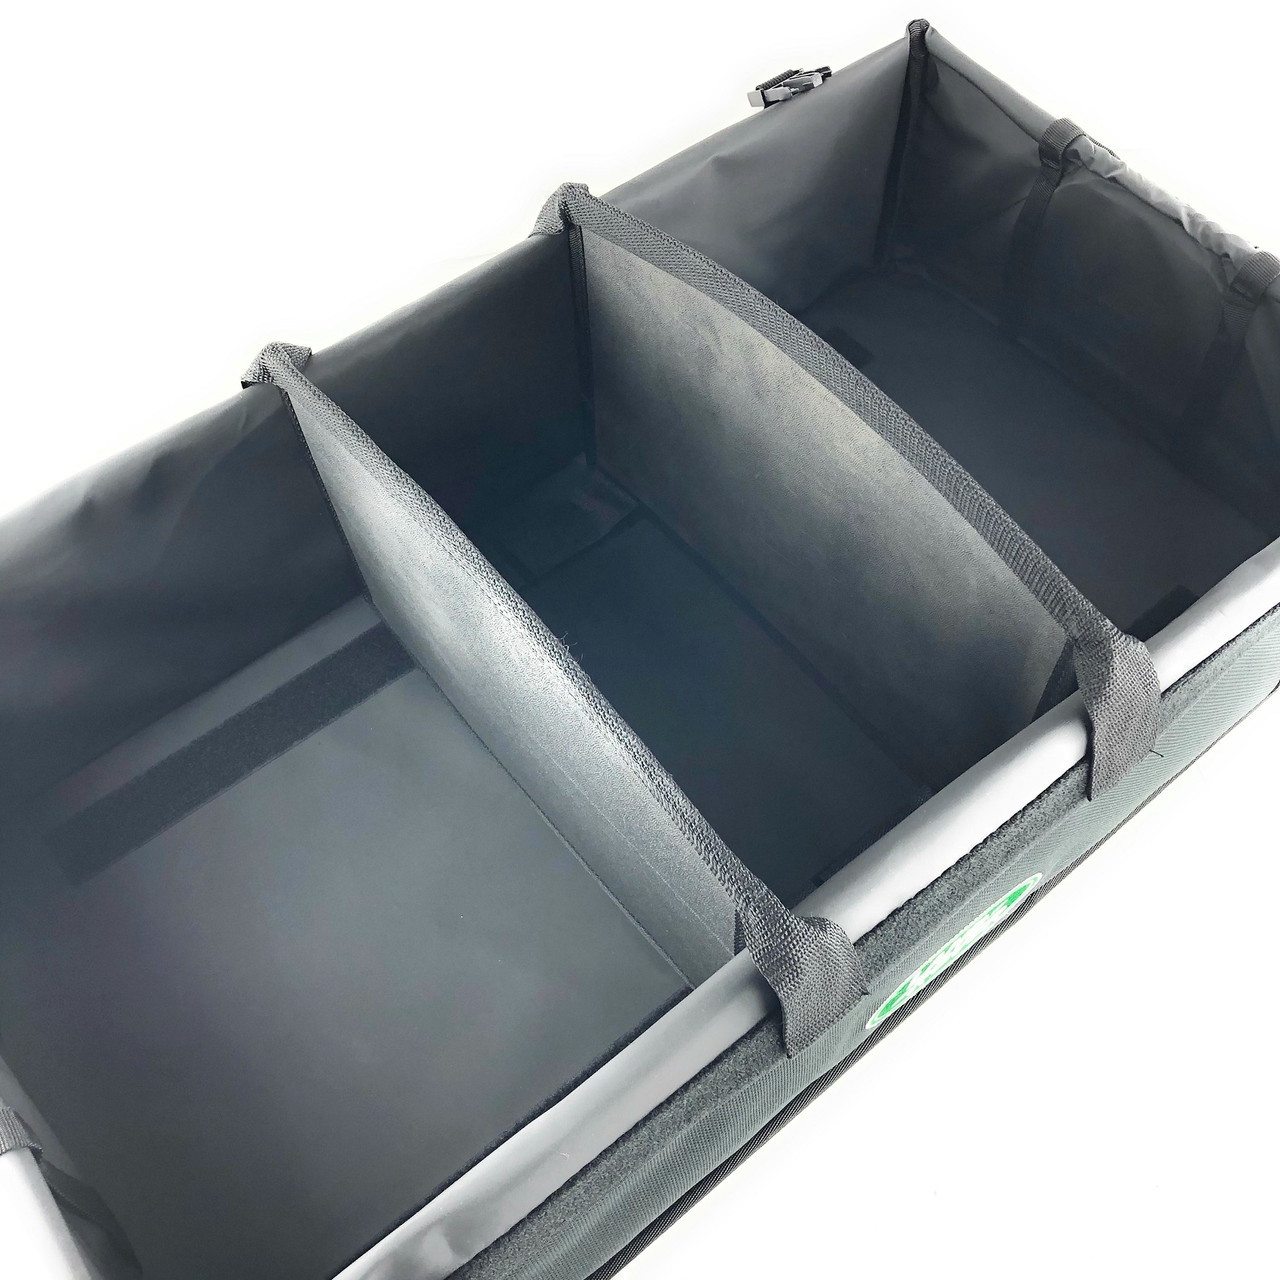 Collapsible Cargo Carrier - EEA500050PVJ